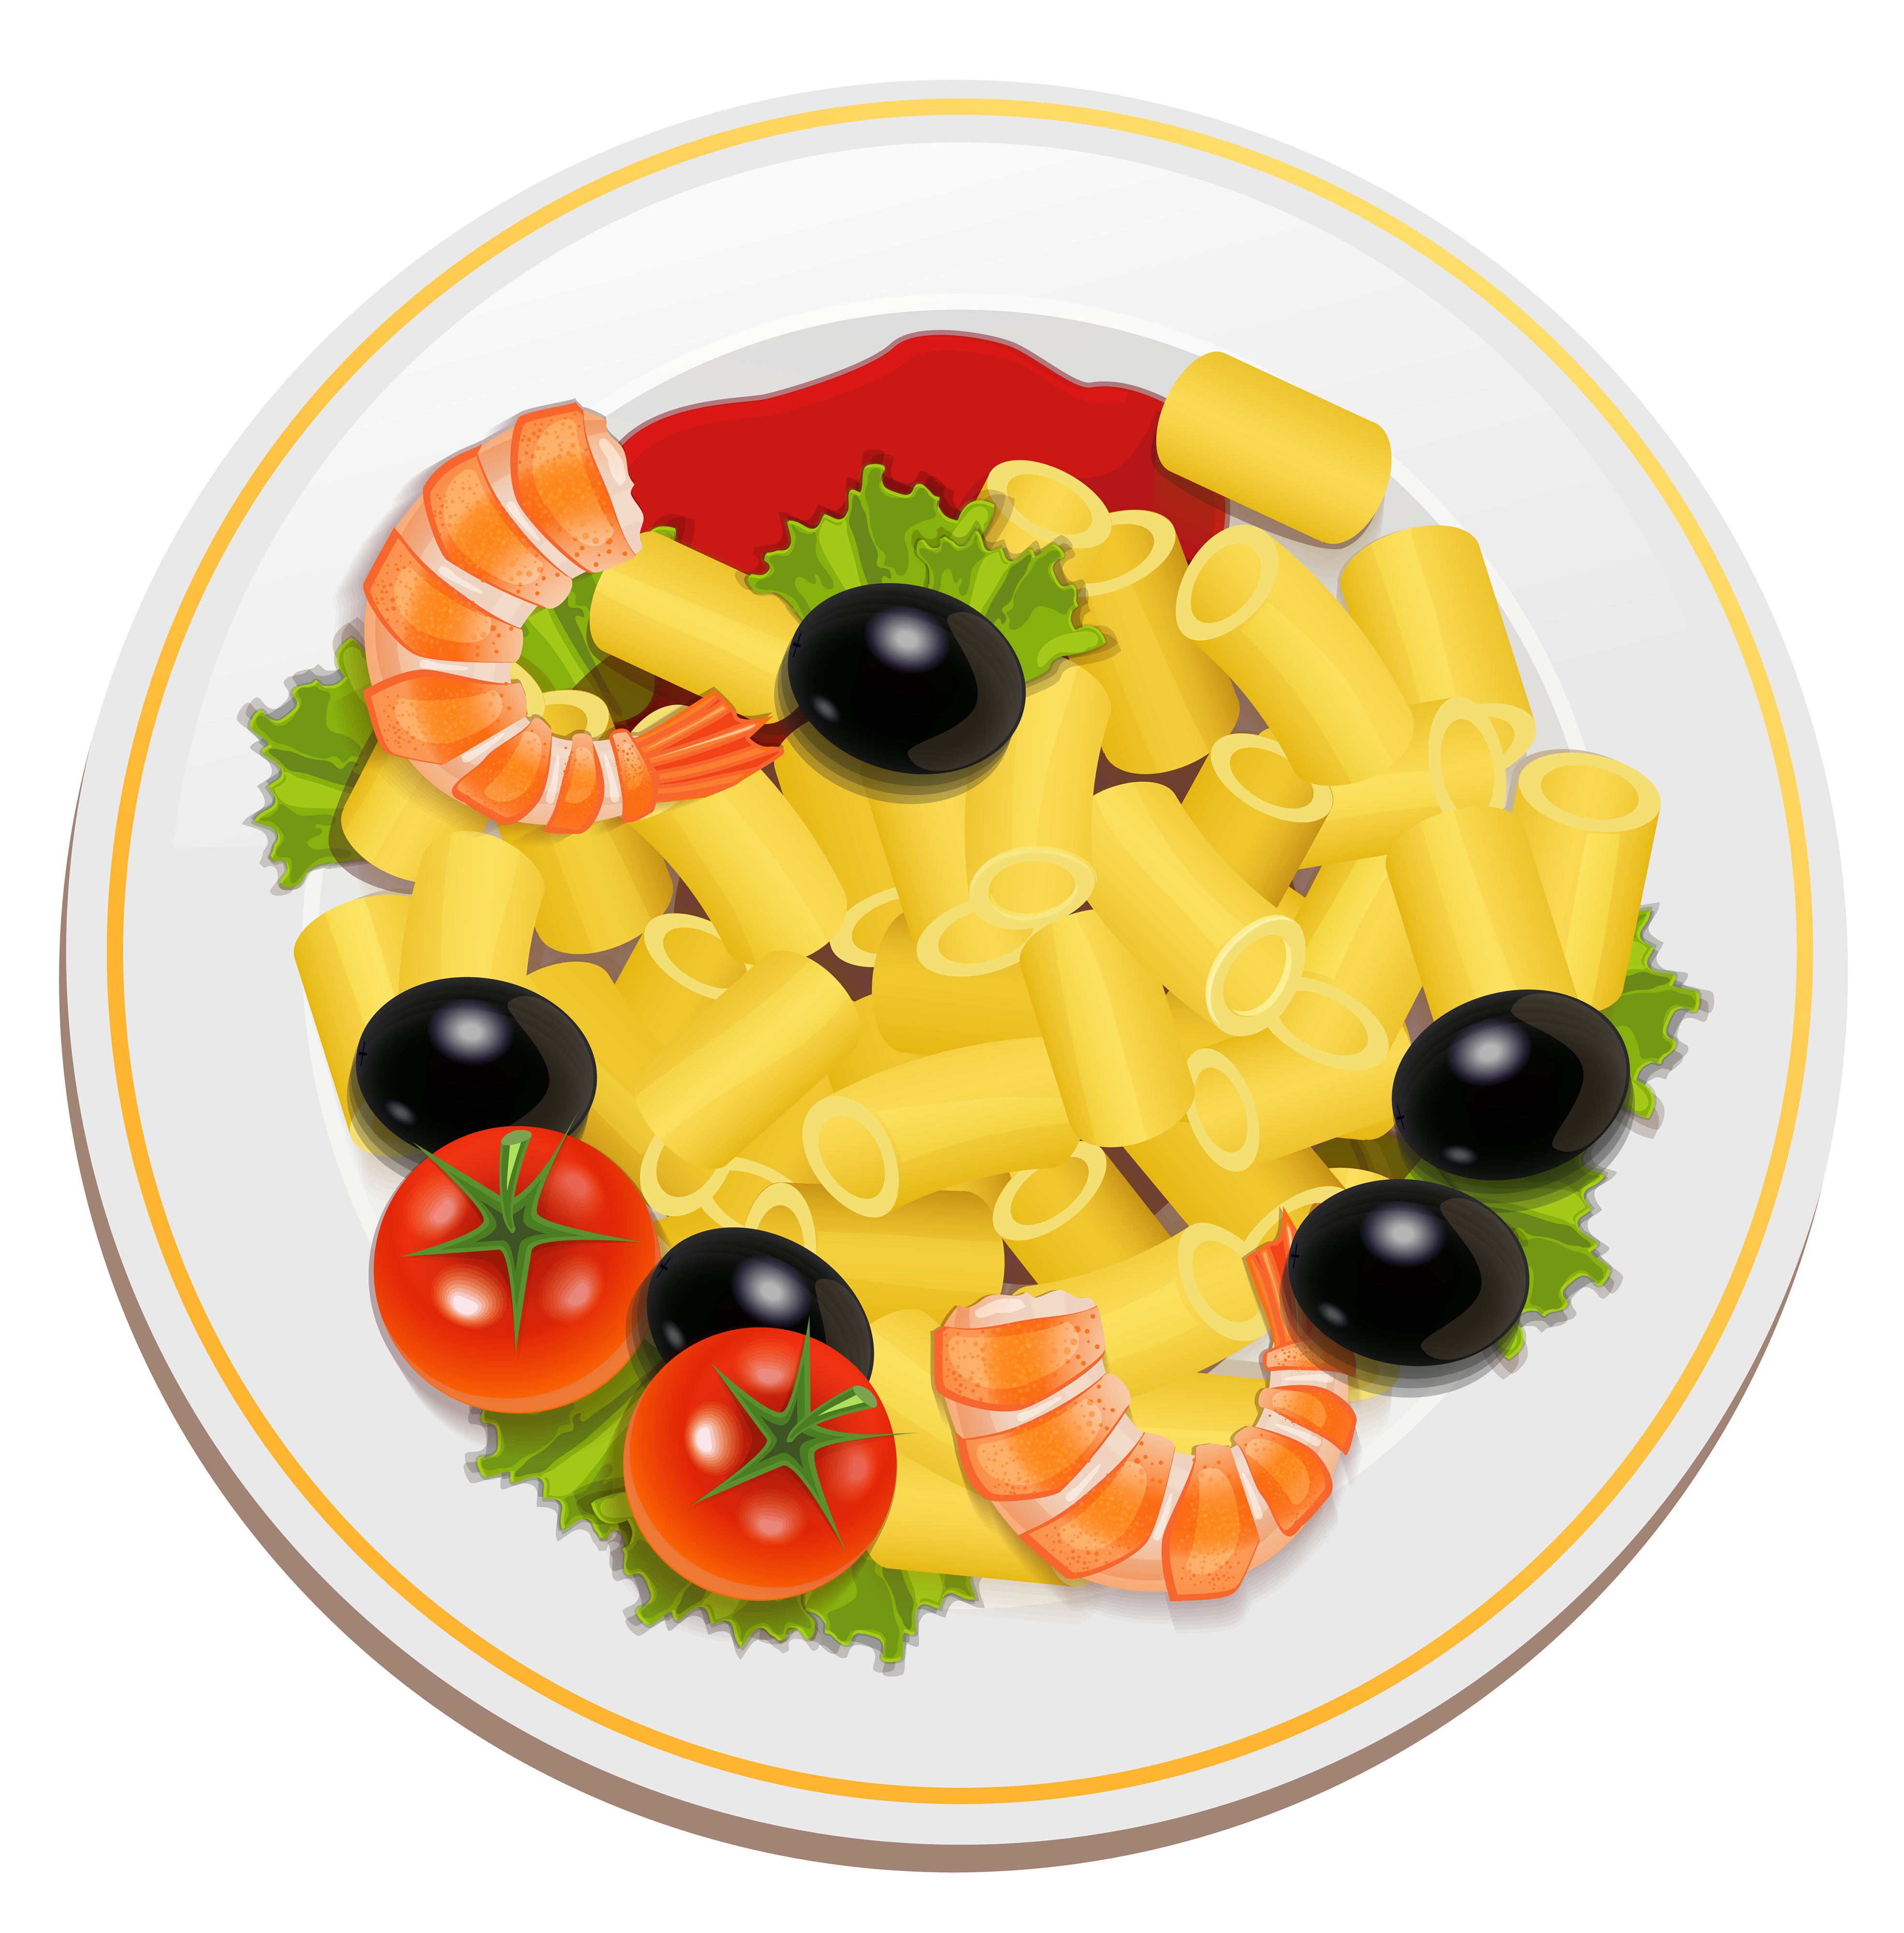 Pasta with shrimps png. Food clipart spaghetti